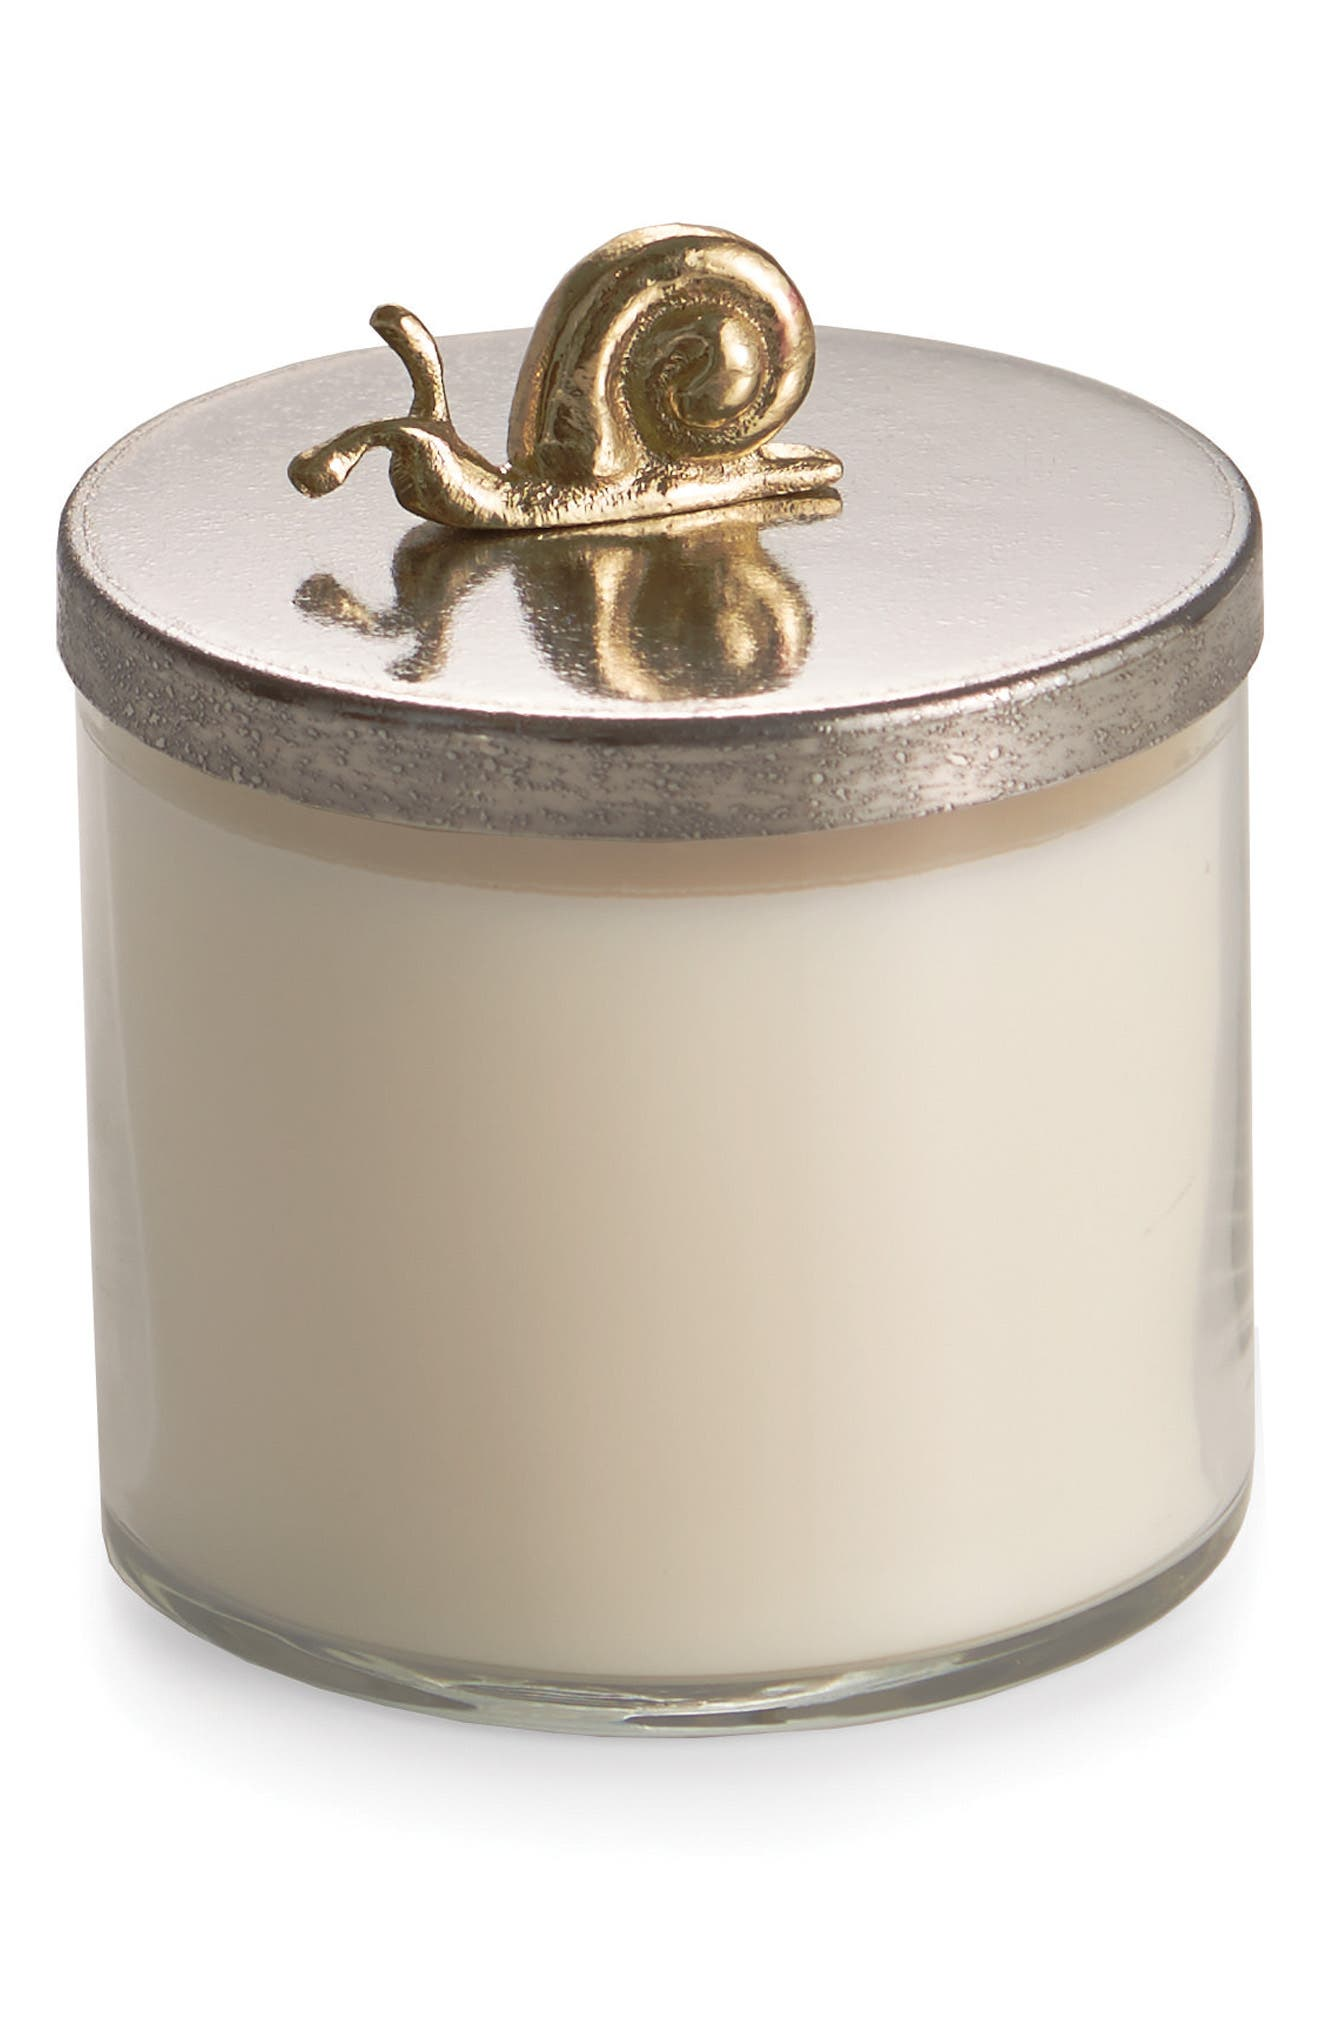 'Enchanted Garden' Soy Wax Candle,                             Alternate thumbnail 2, color,                             040